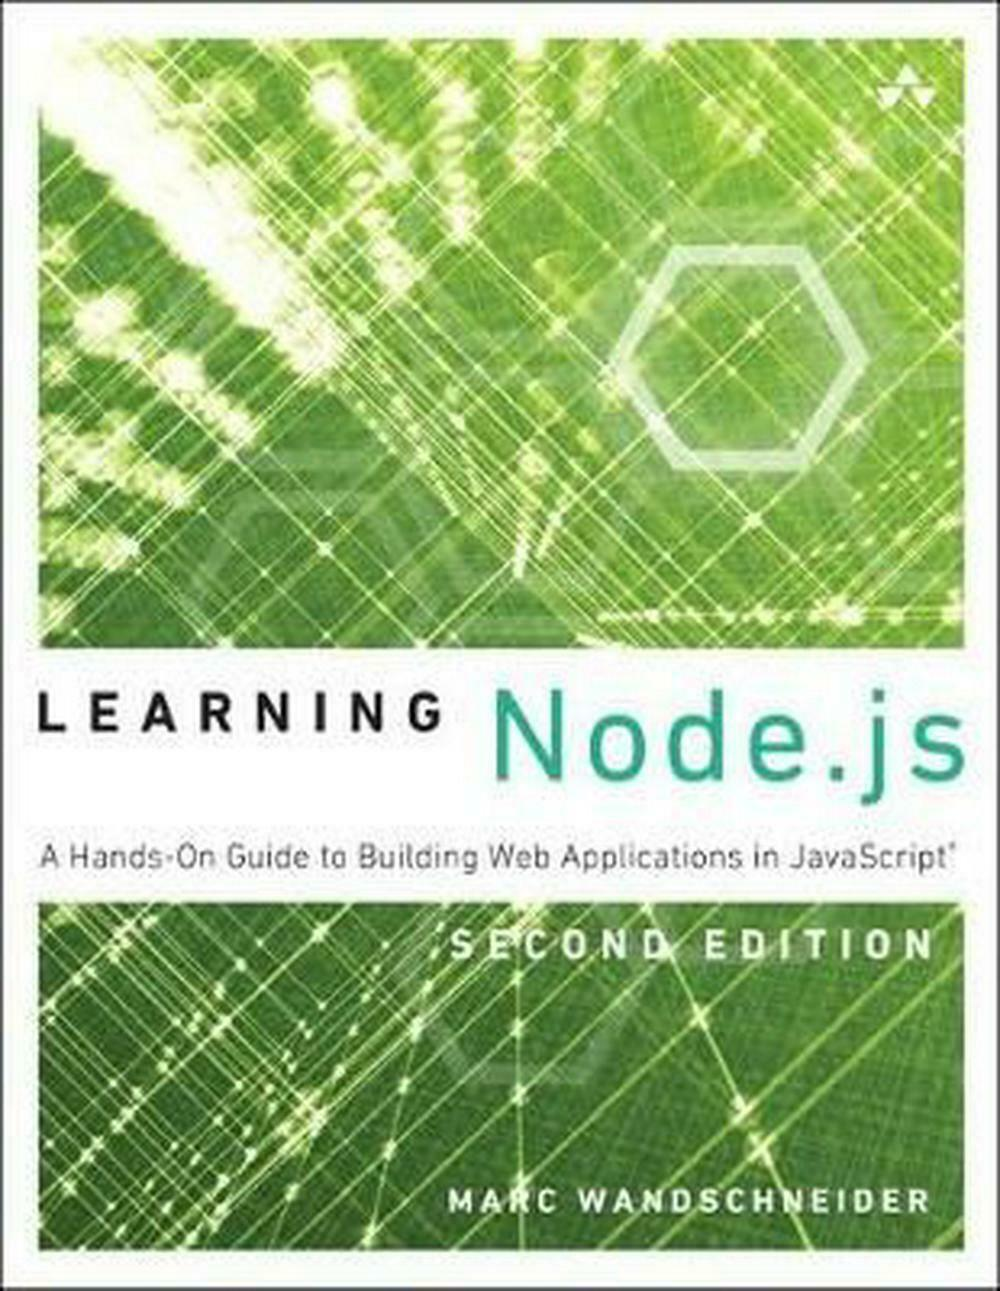 Learning Node.js: A Hands-On Guide to Building Web Applications in JavaScript by |